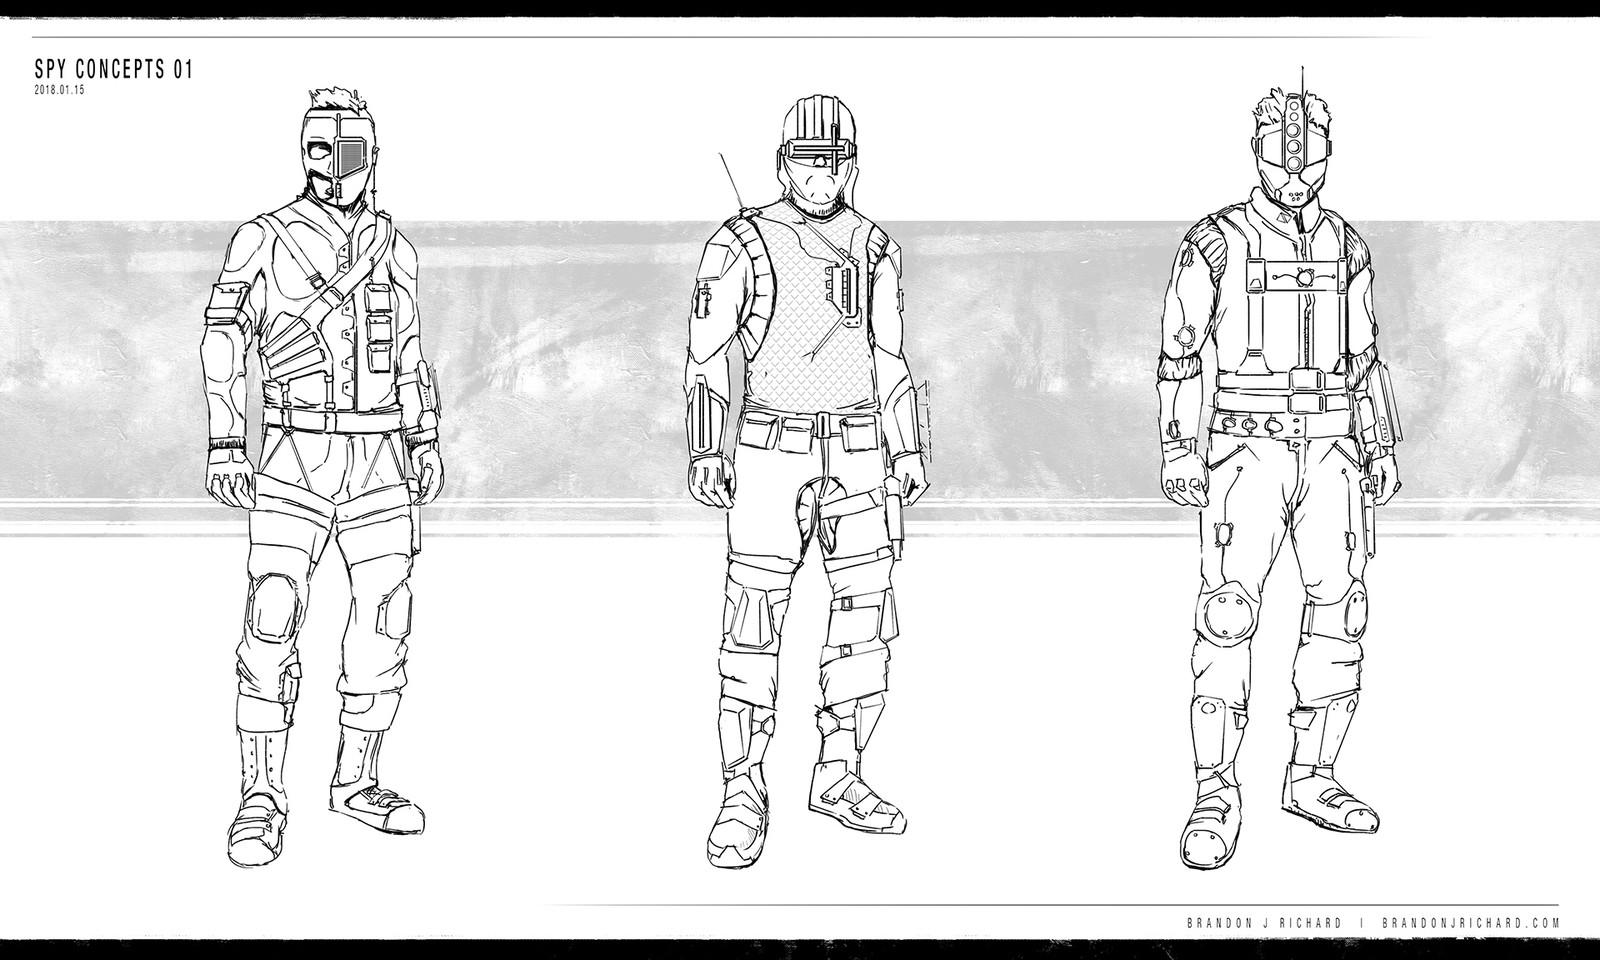 Spy concept sketches to define the look.